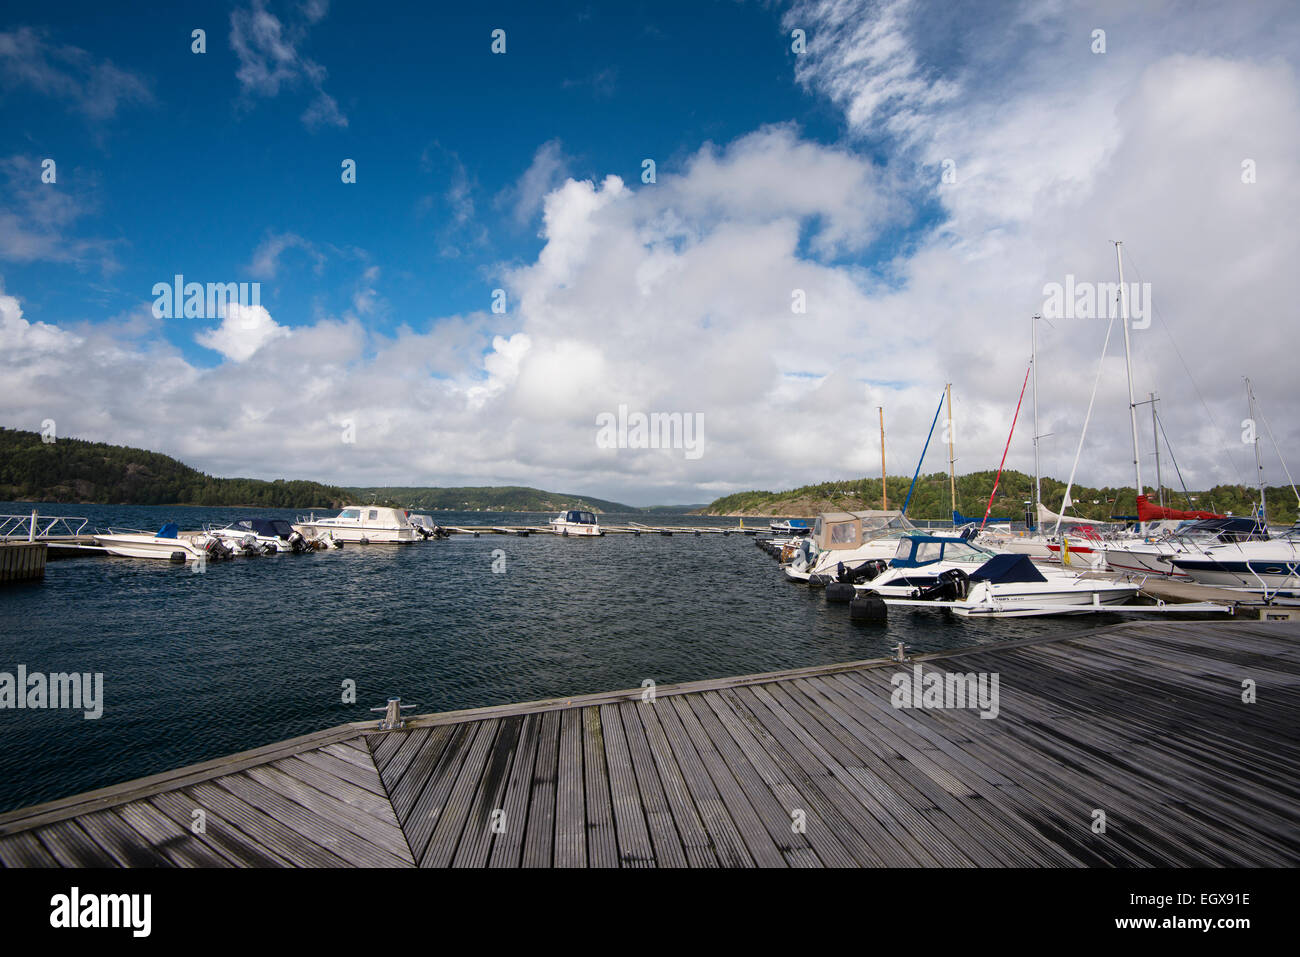 Harbour at Orust, boats, Västra Götalands län, Bohuslän, Scandinavia, Sweden Stock Photo